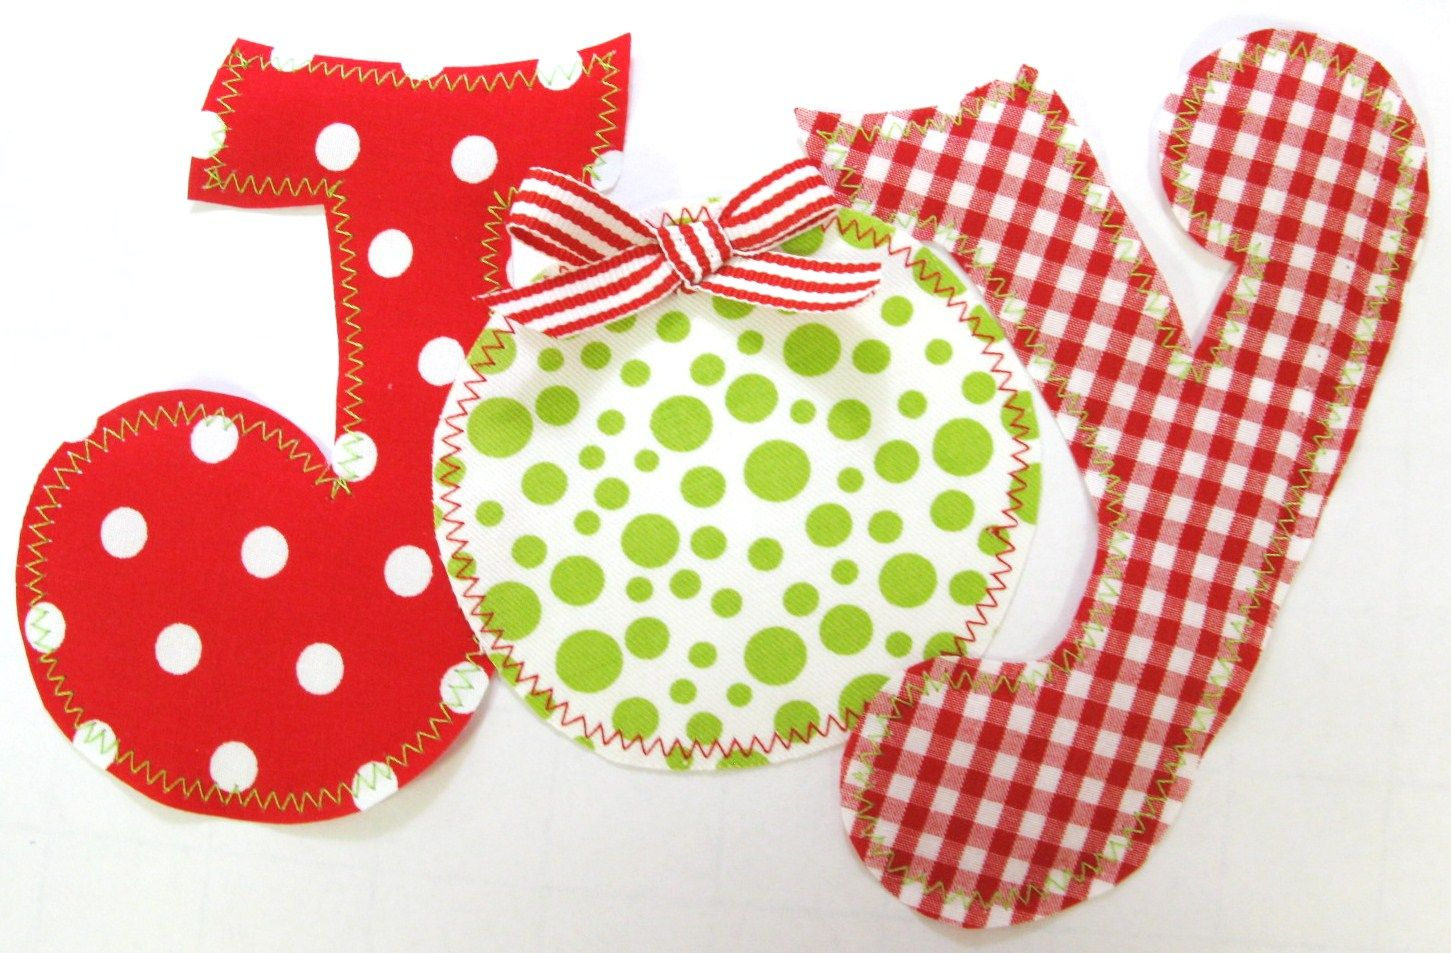 Applique Free Applique Designs Appliques For Christmas How To